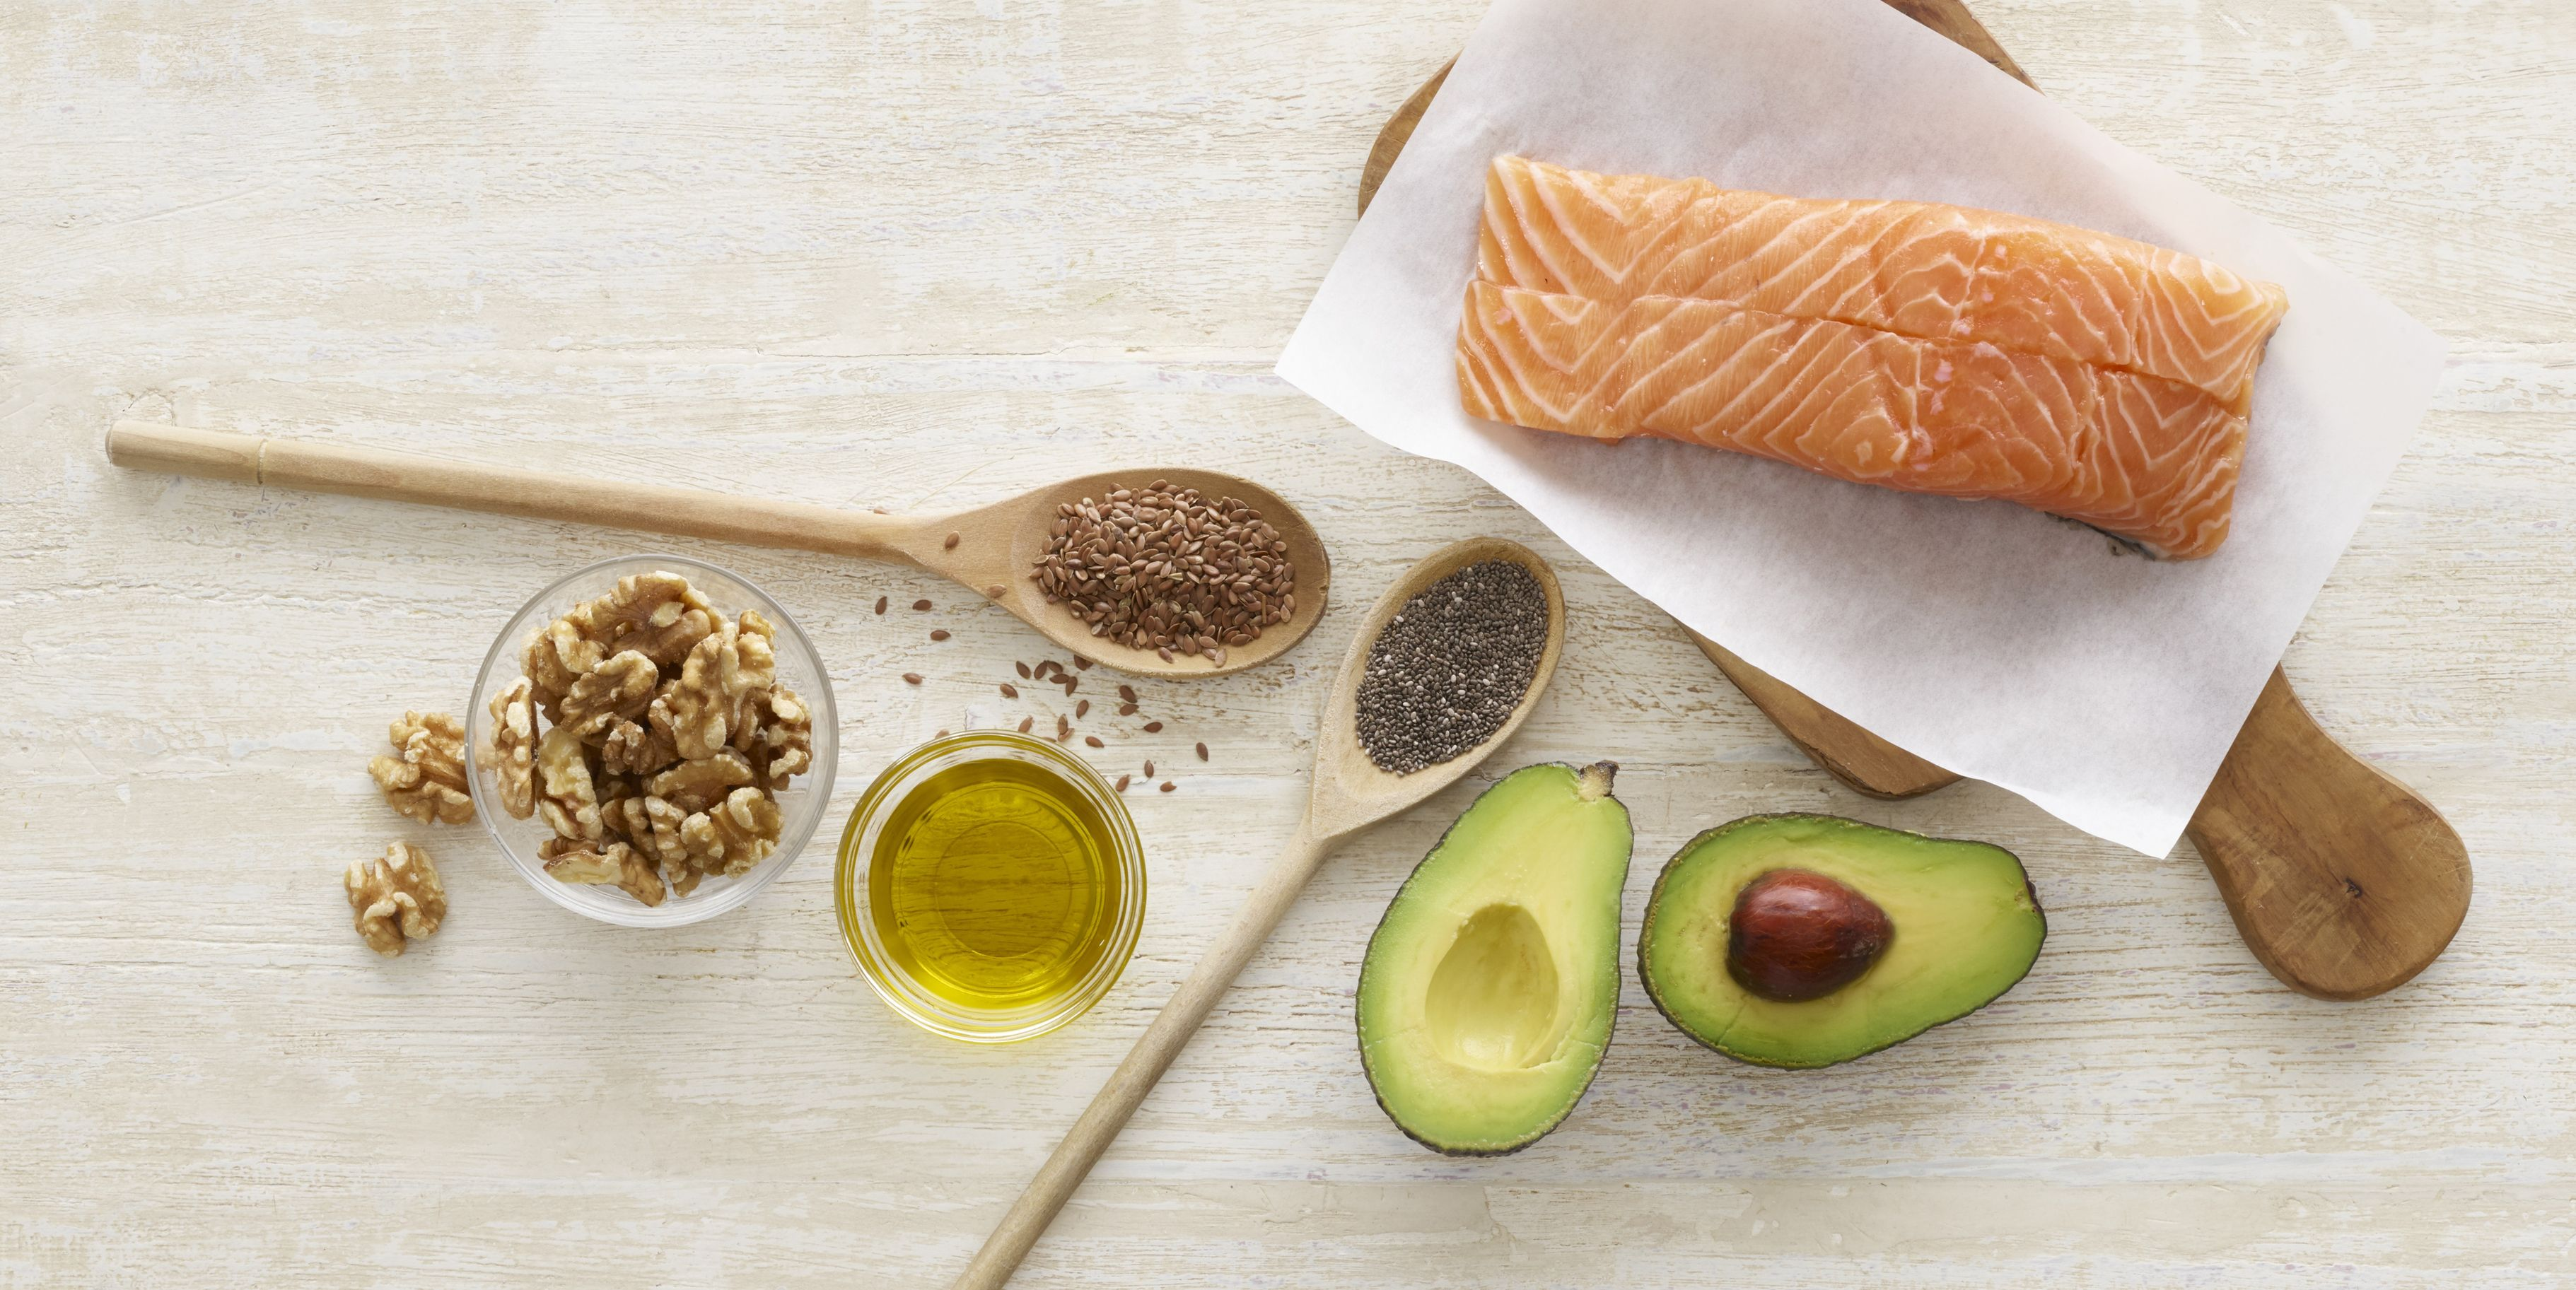 10 High-Fat Keto-Friendly Foods to Add to Your Diet